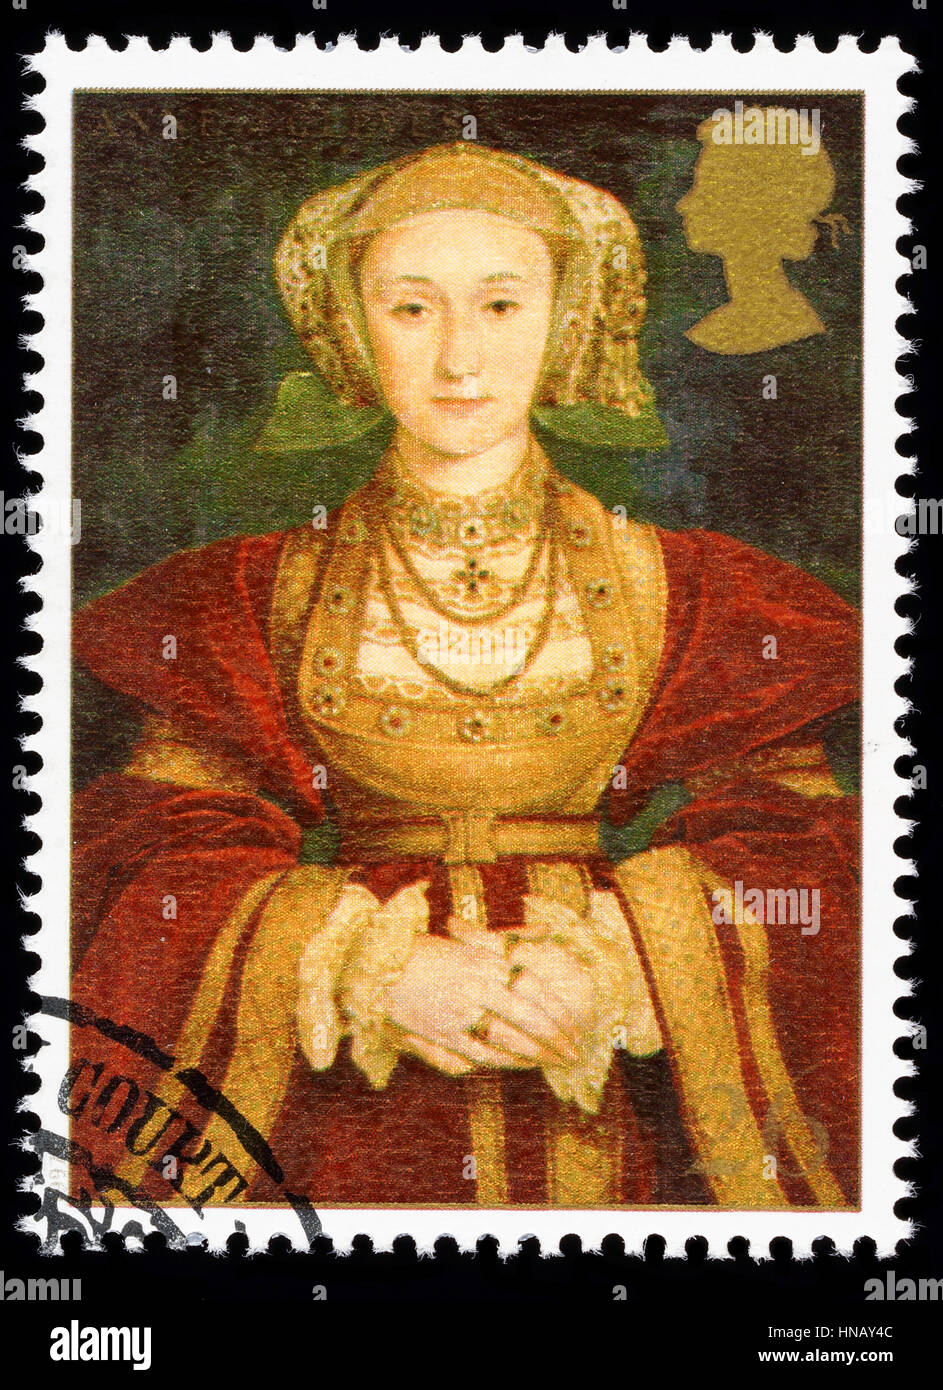 UNITED KINGDOM - CIRCA 1997: used postage stamp printed in Britain commemorating King Henry 8th showing Anne of - Stock Image